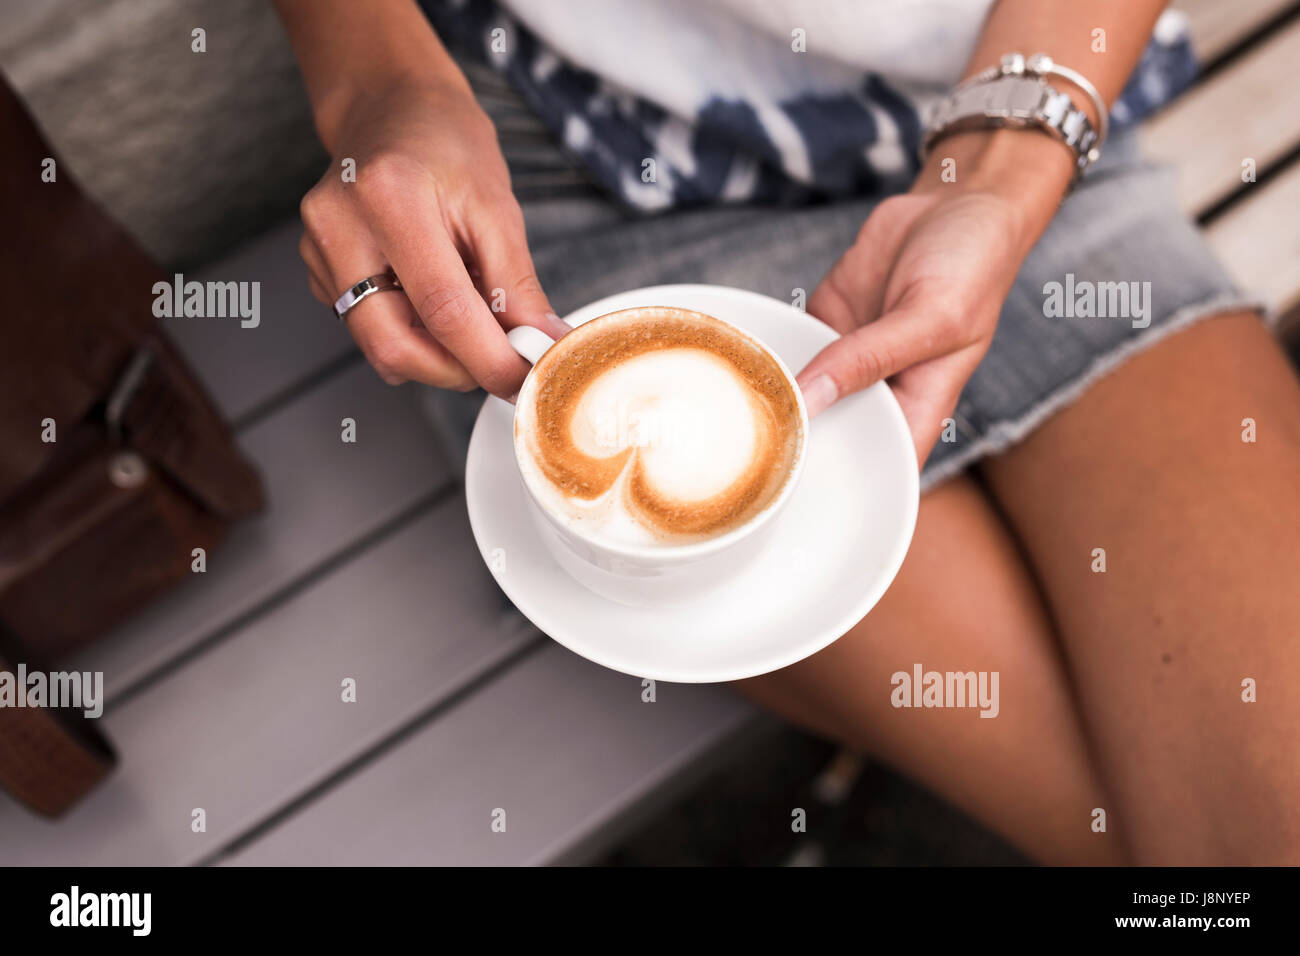 Woman holding coffee cup with cappuccino Stock Photo